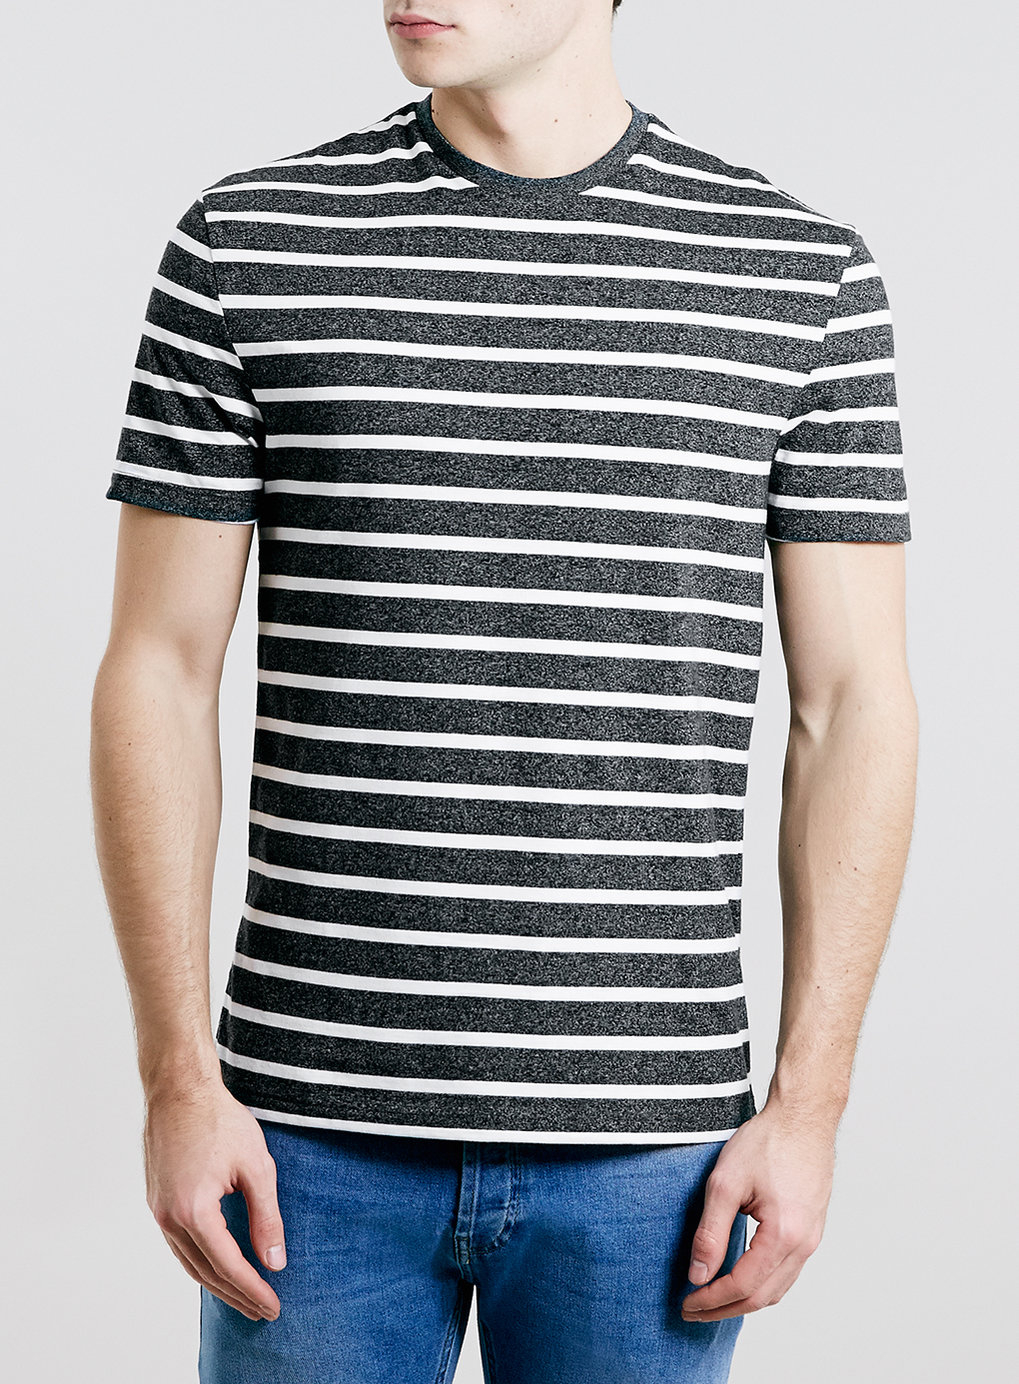 Grey Striped T Shirt Of Topman Grey And White Stripe T Shirt In Gray For Men Grey